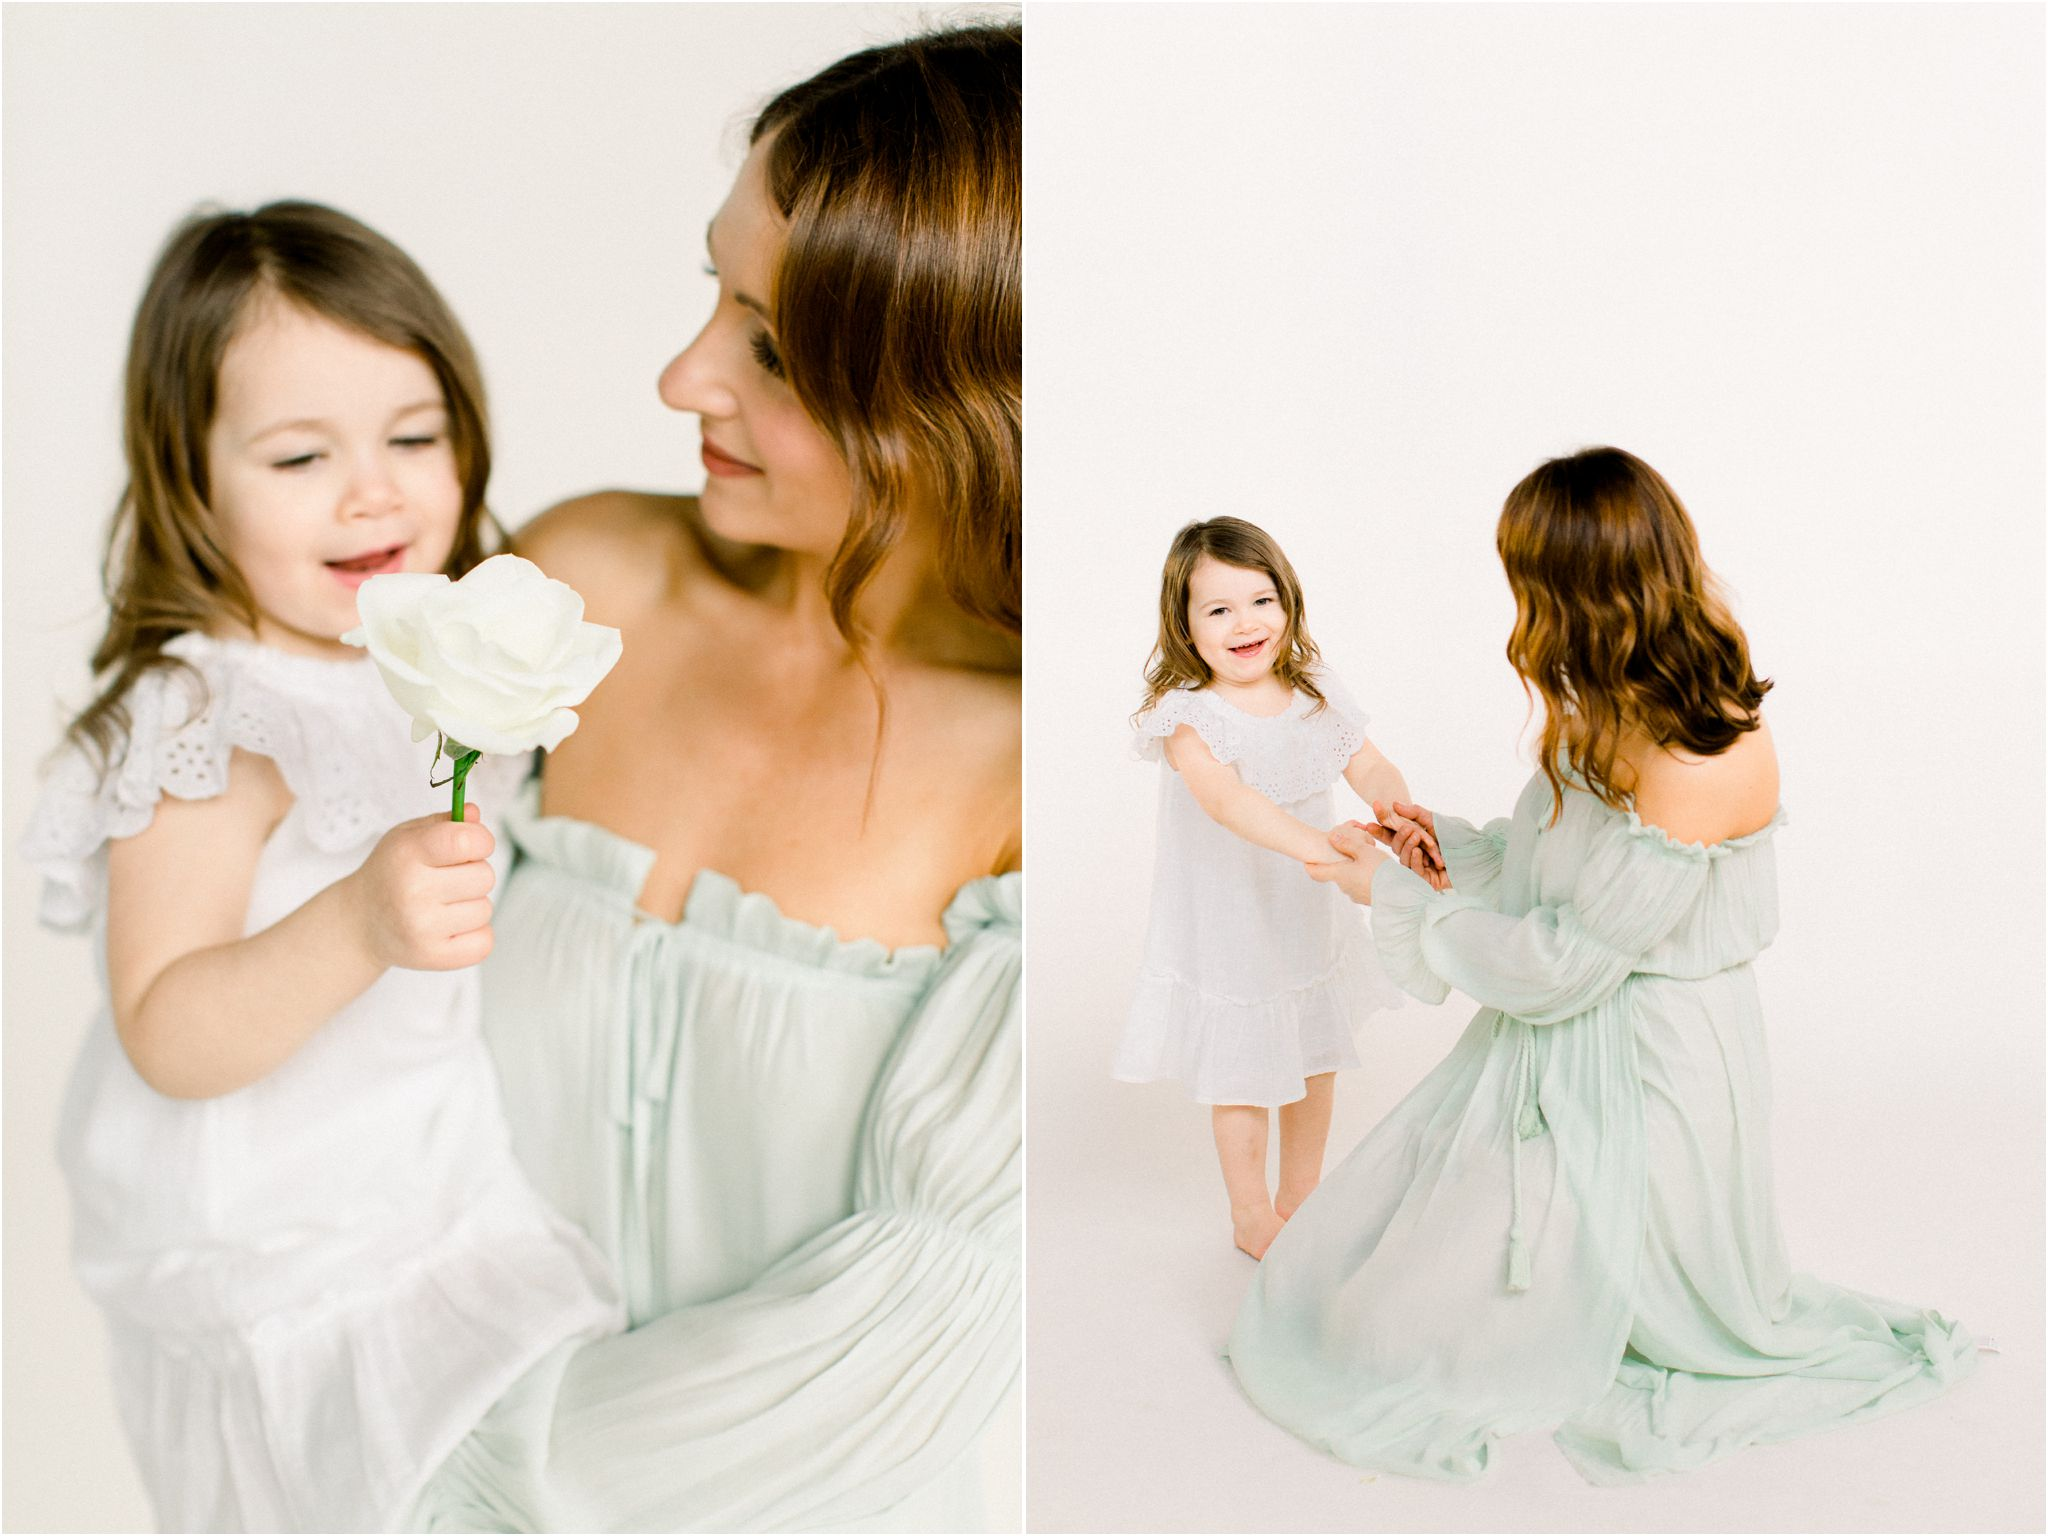 190413_MOTHERHOOD_GREGORY_EDITS_00005.jpg